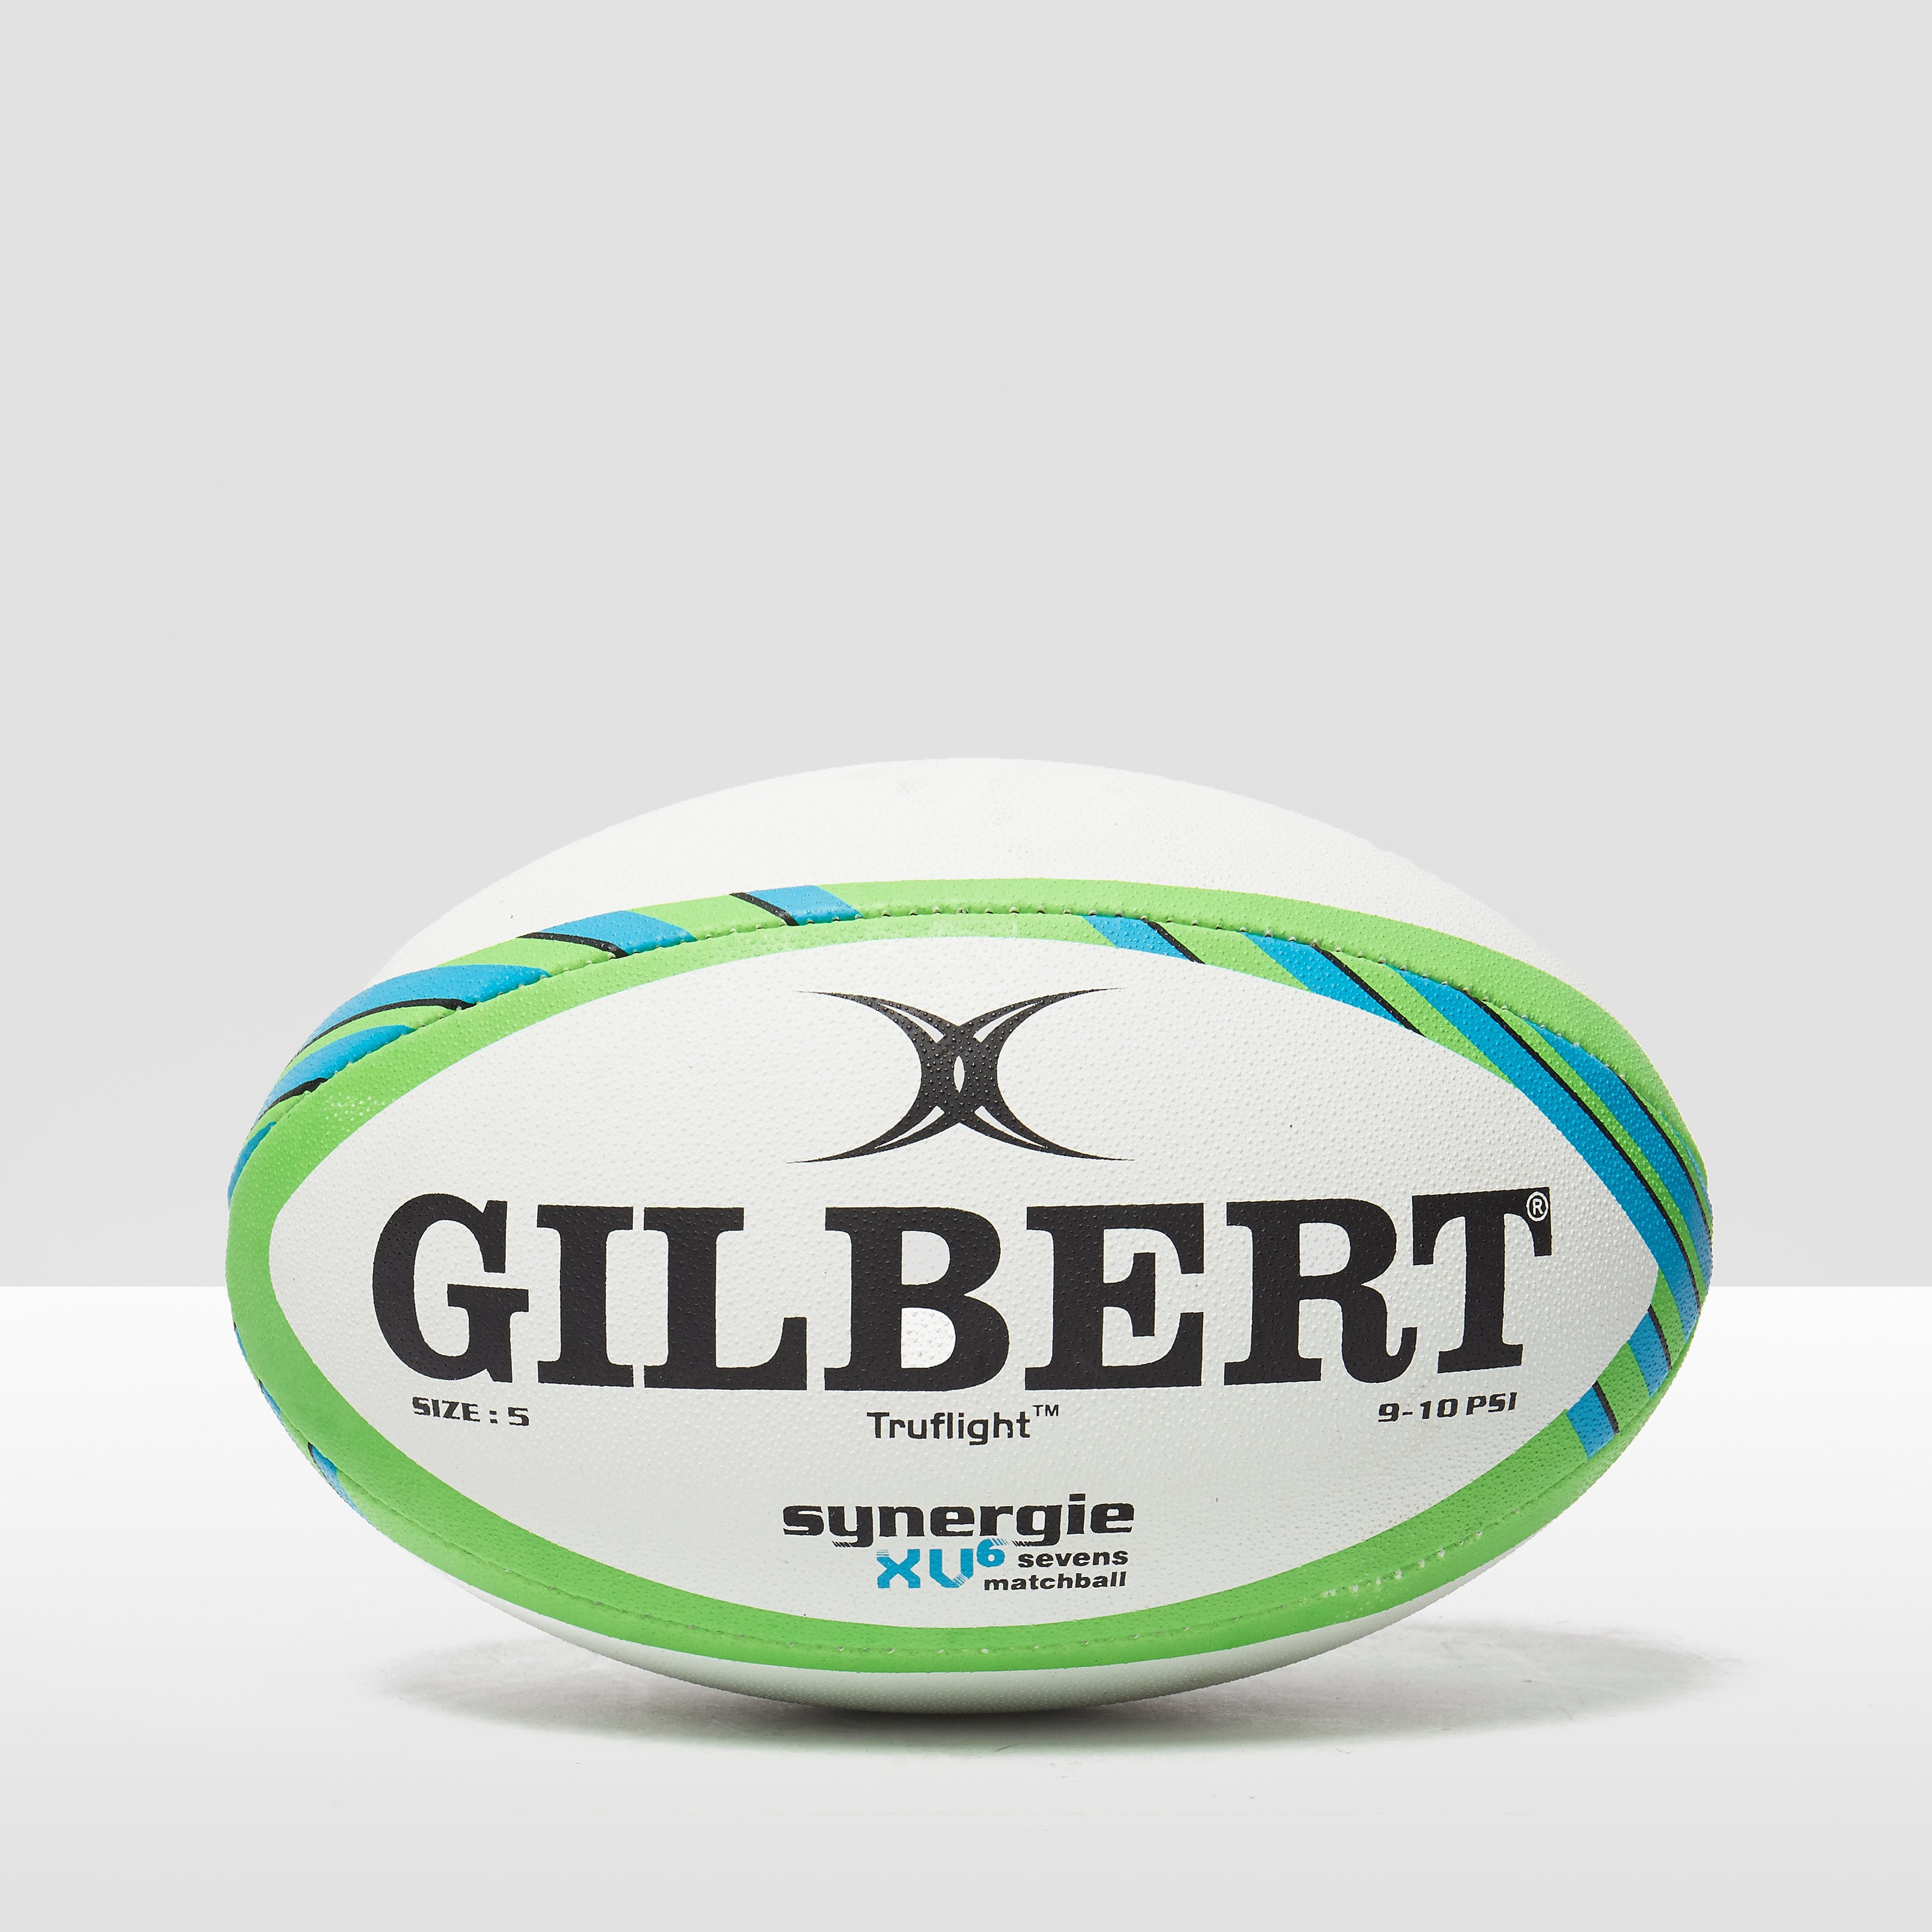 Gilbert Synergie XV-6 7S Rugby Ball